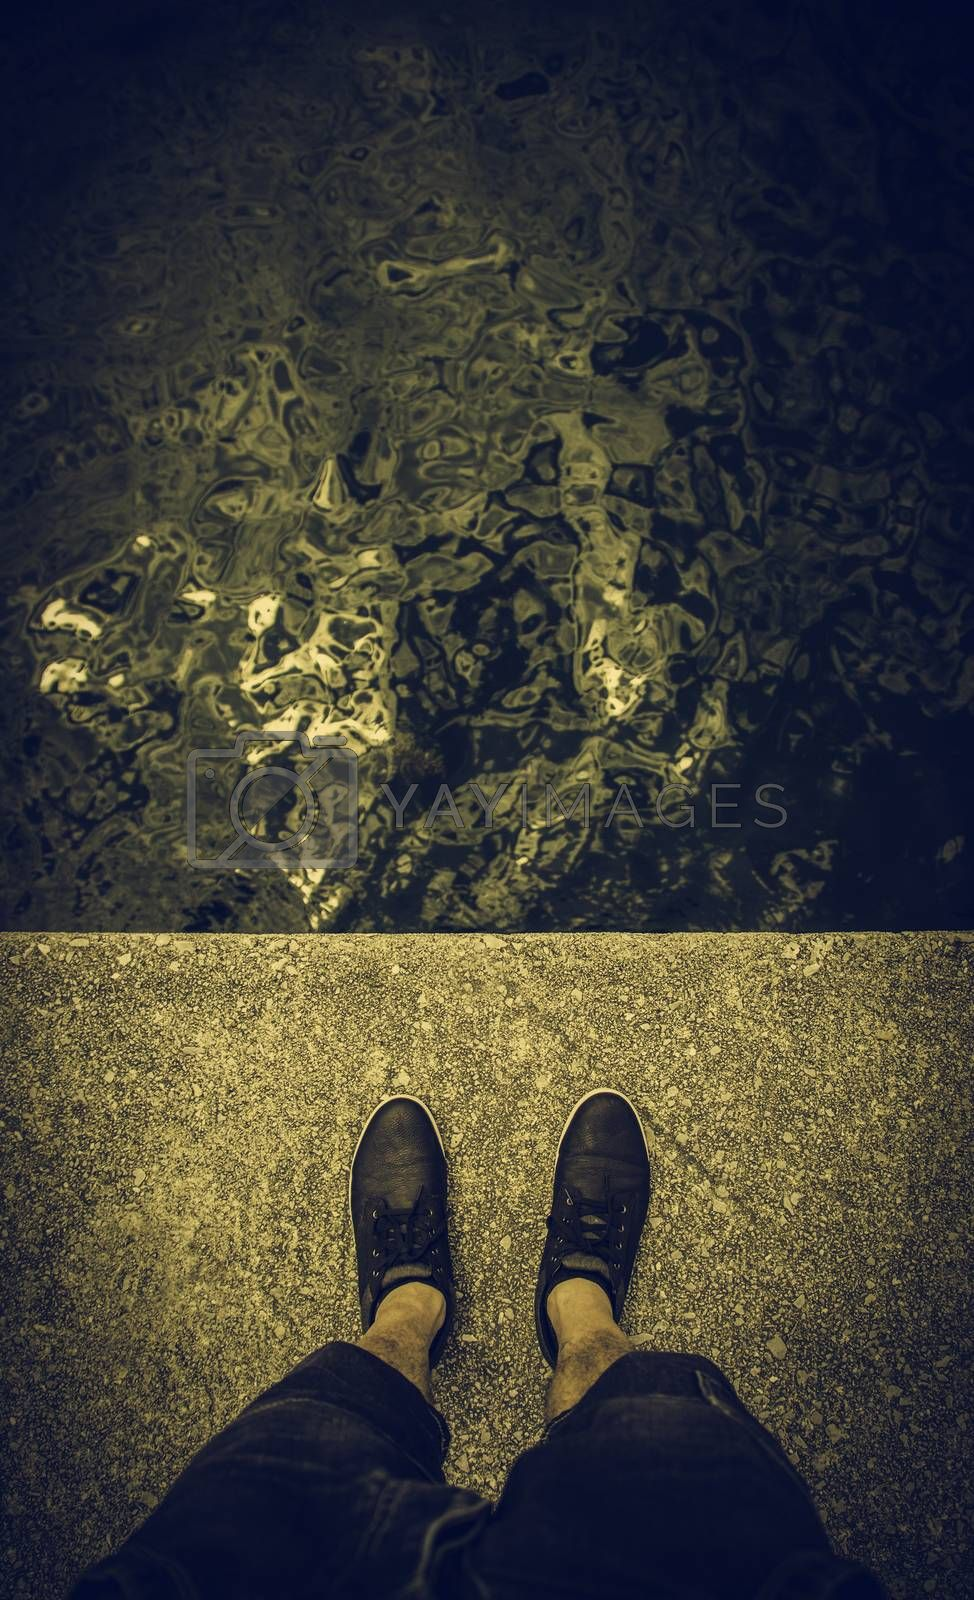 Feet on the water's edge, detail of exploration and contemplation